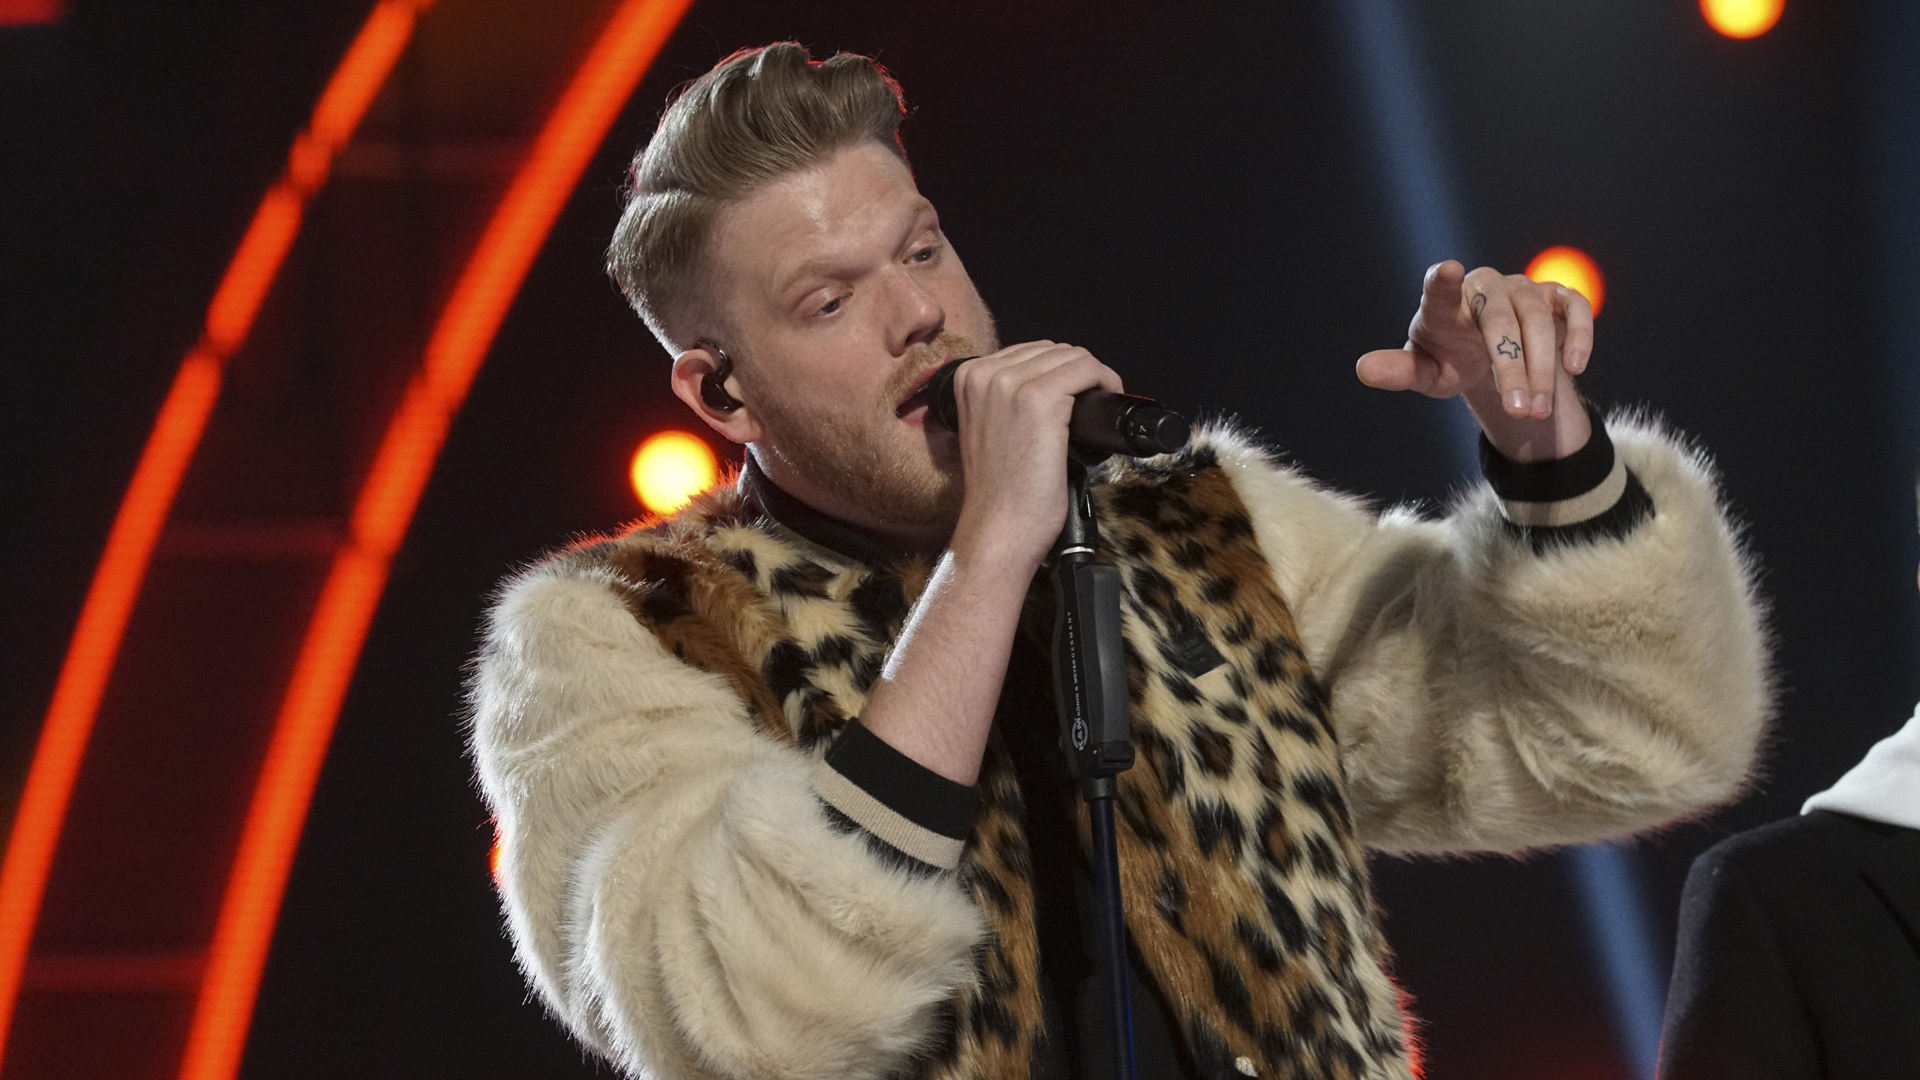 Pentatonix singer Scott Hoying looks like he's really feeling his performance.